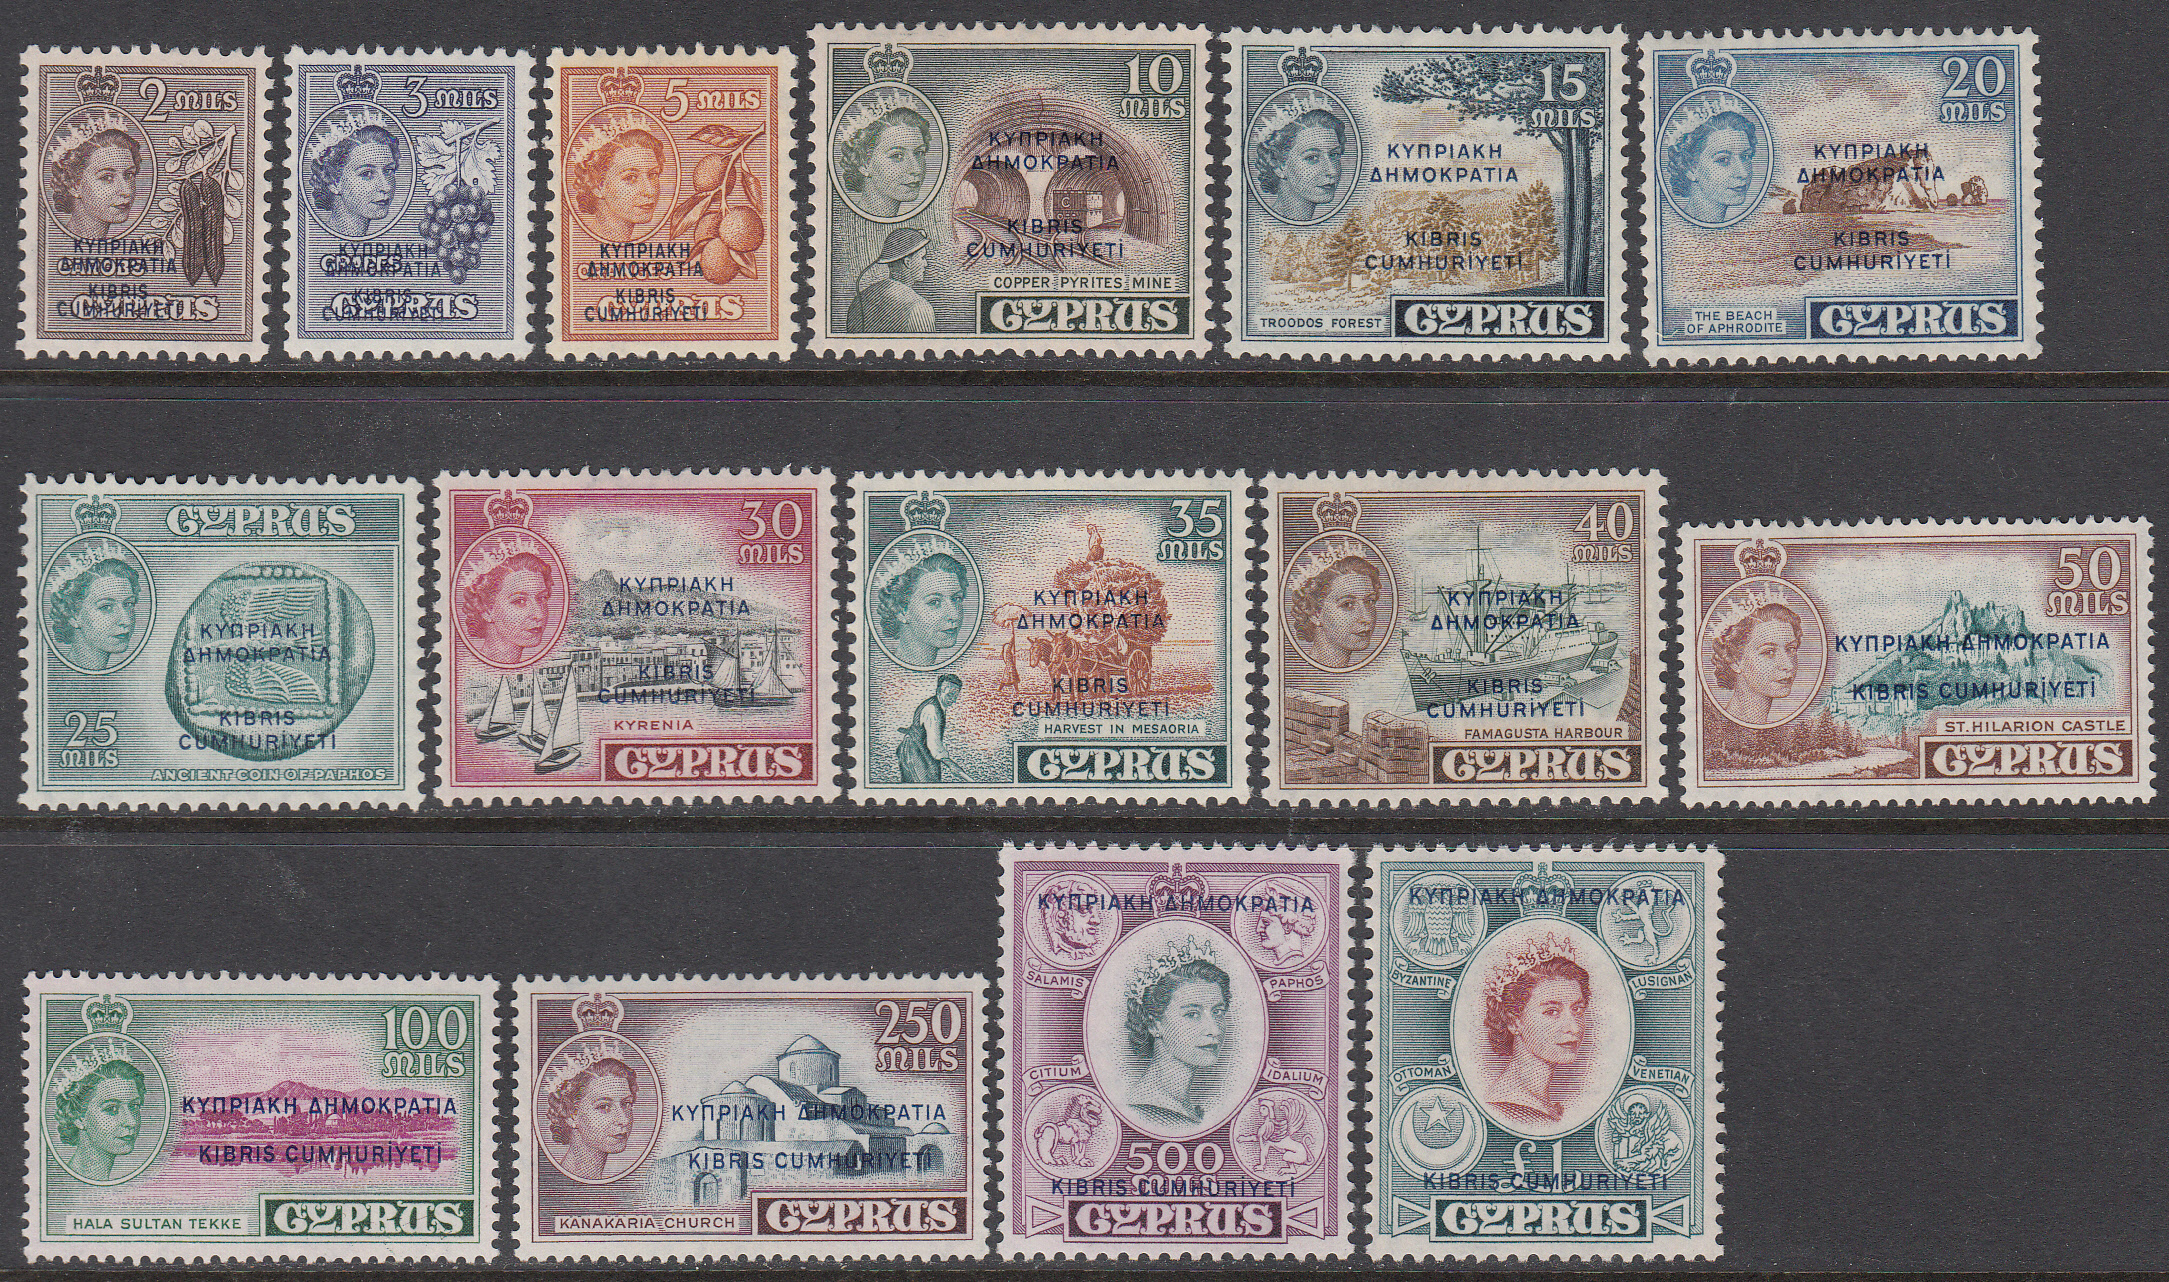 Cyprus Scott 183-197, MNH first Republic set of 15, SCValue $150